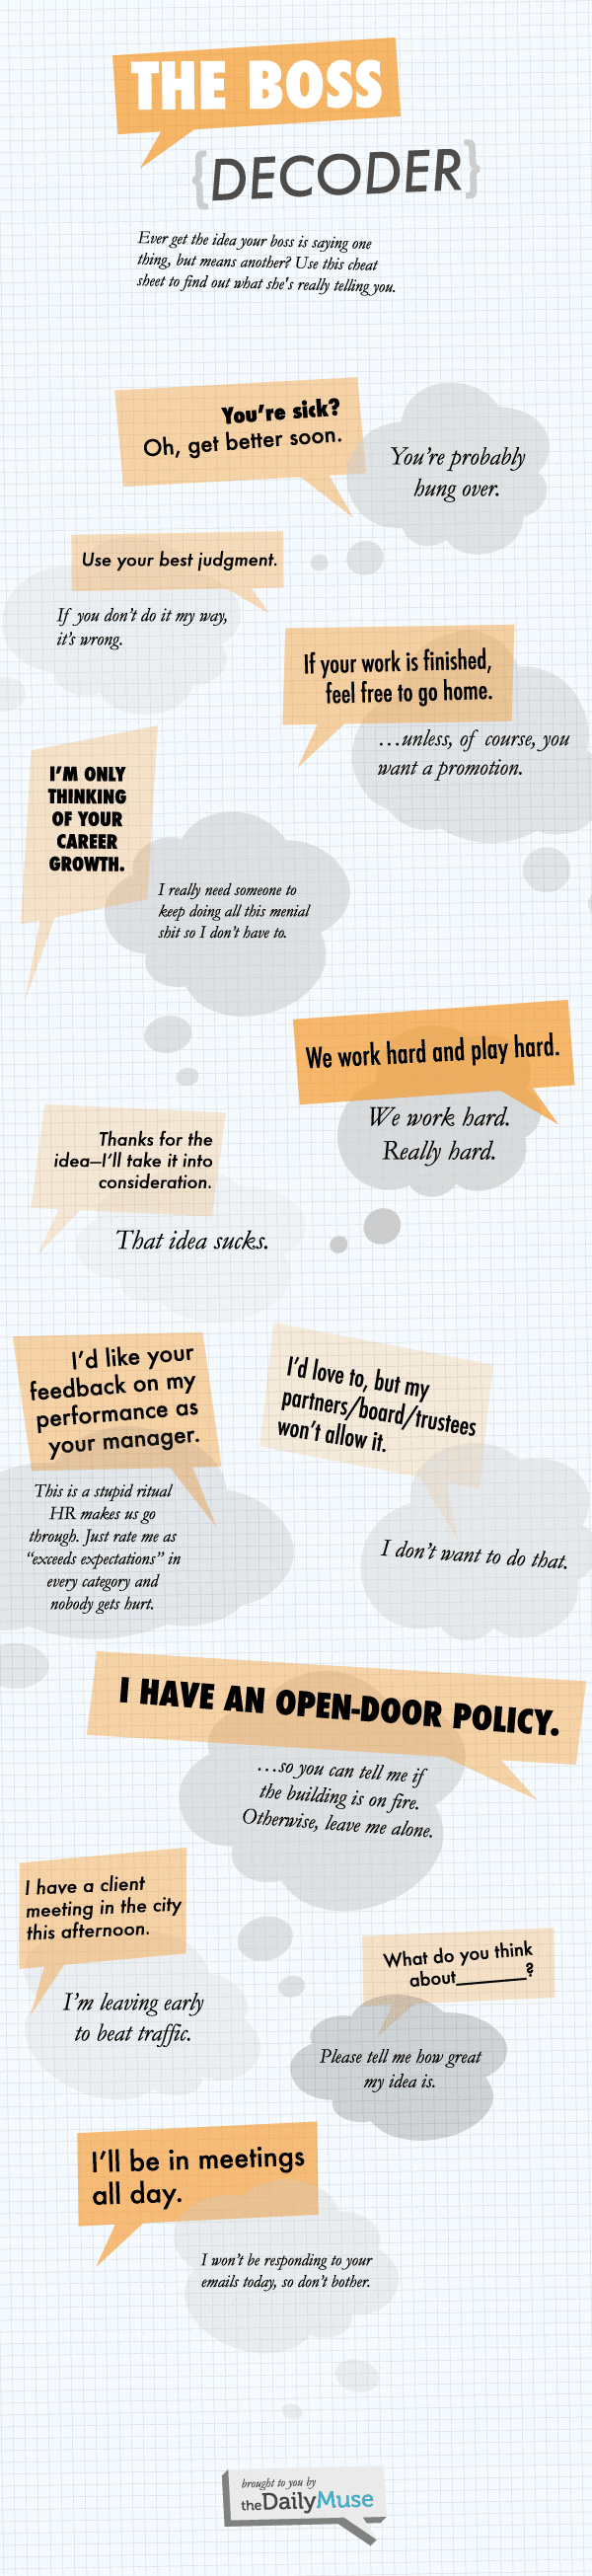 The Boss Decoder [Infographic]